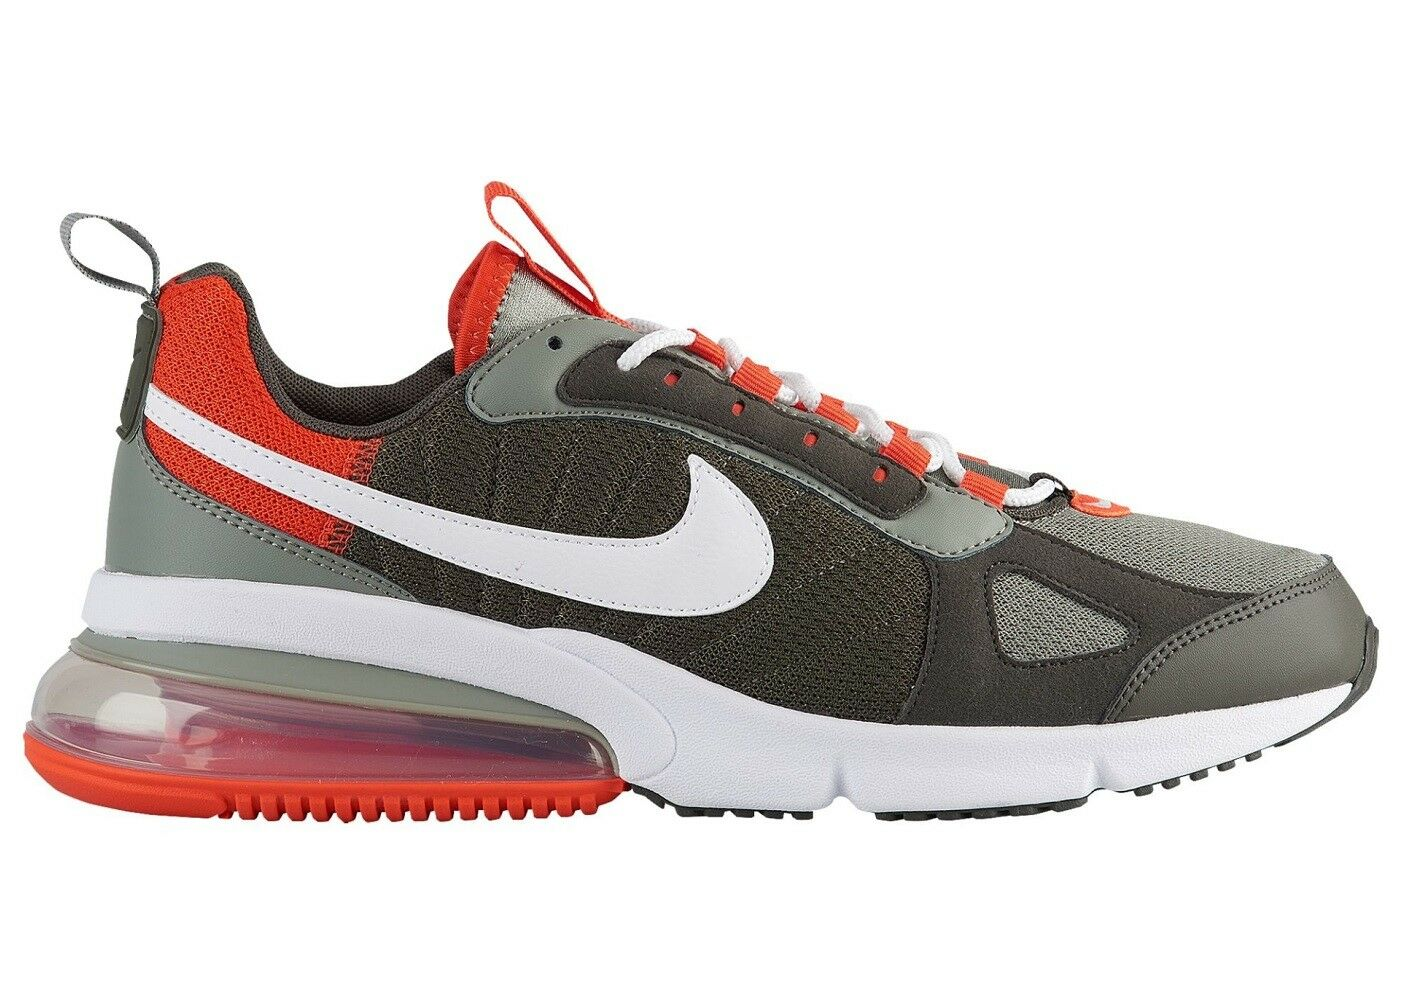 Nike Air Max 270 Futura Mens AO1569-002 Stucco Orange Running Shoes Comfortable best-selling model of the brand